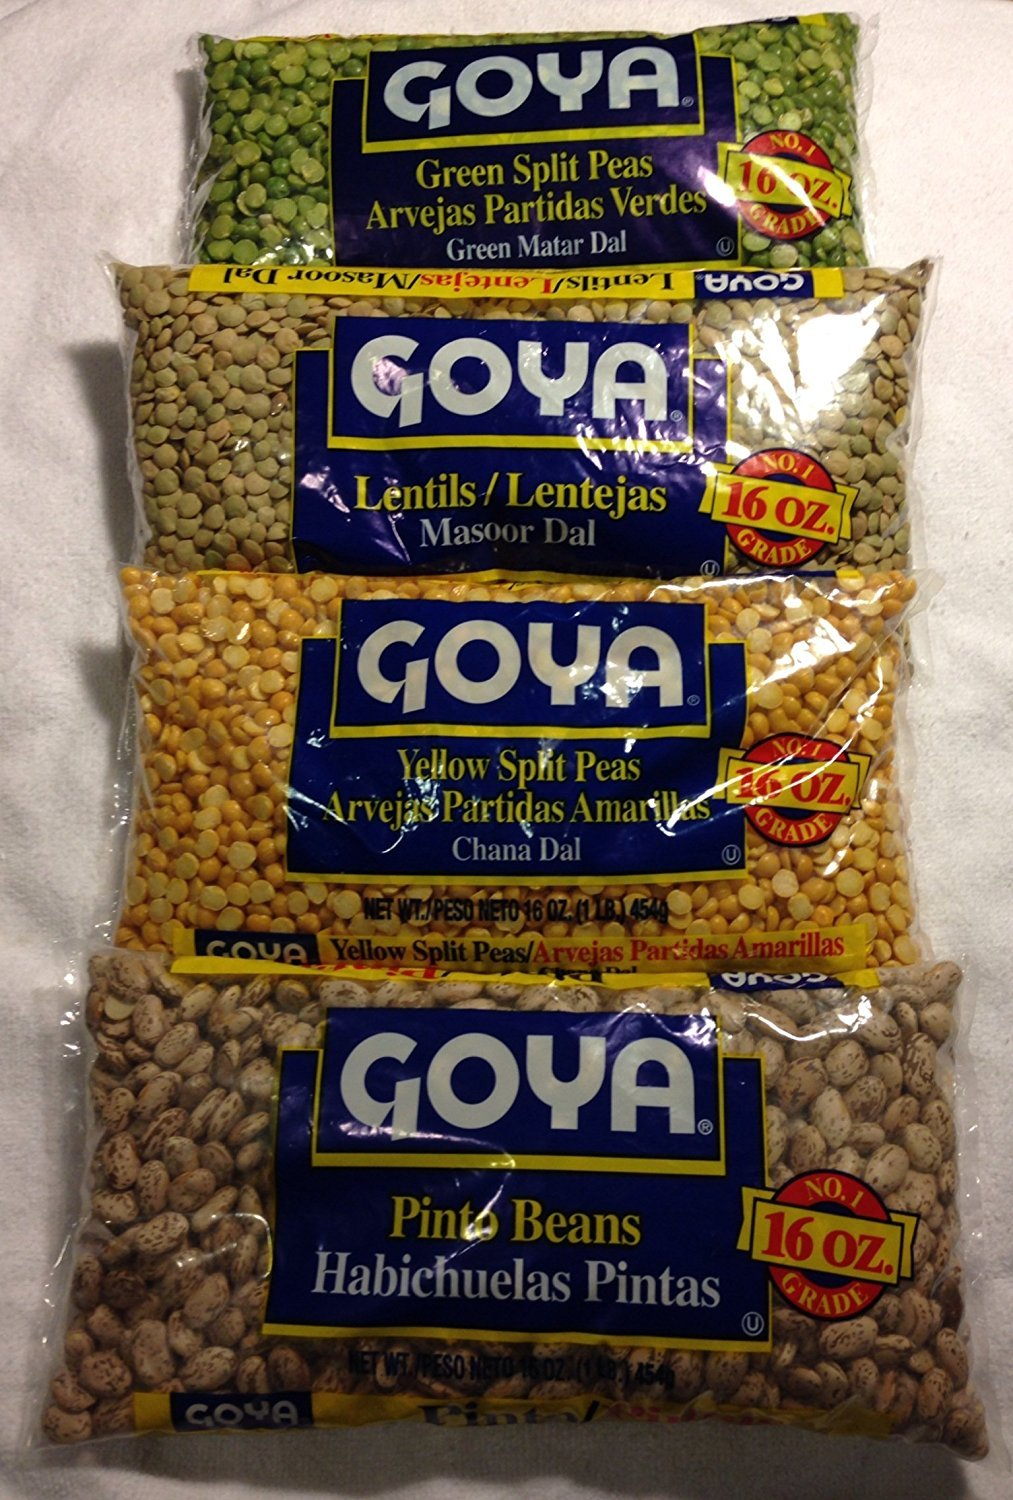 GOYA Dried Lentils, Pinto Beans, Yellow Split Peas & Green Split Peas - Variety Pack - 16oz Each 1 Lb Bag (4 Pack) Split Pea or Lentil Soup - Refried Beans - Recipes on Bag, Dip, Healthy Protein